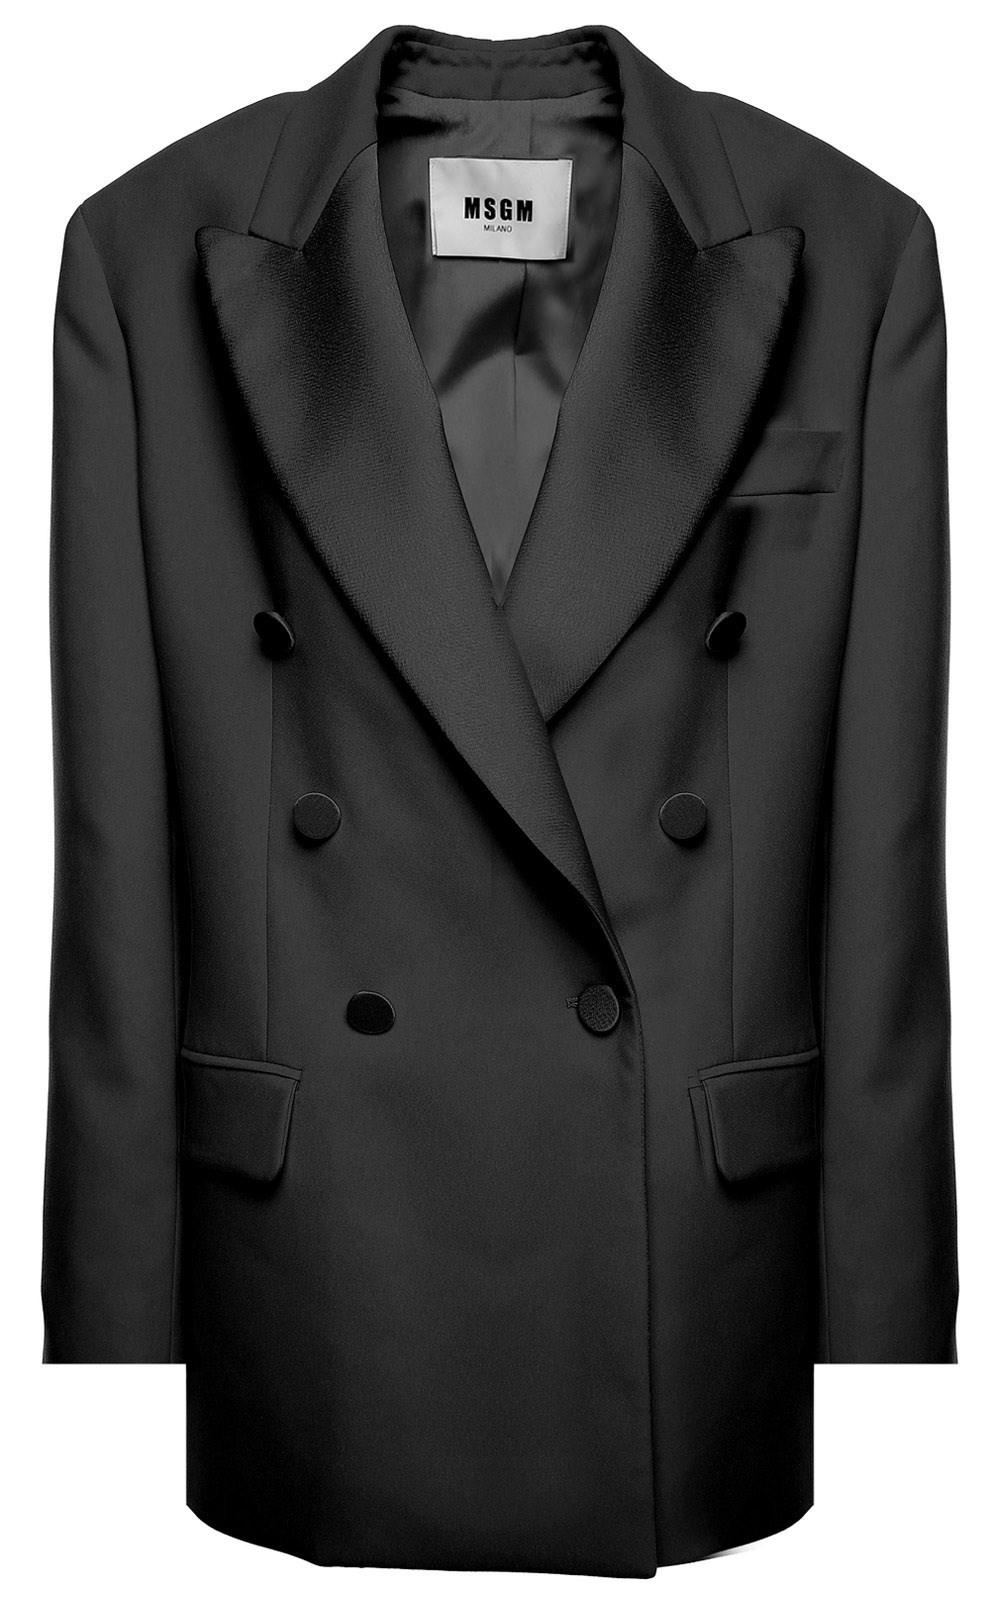 Tuxedo breasted in Crepe Lyst Msgm And Black Double Jacket Satin qWRCv